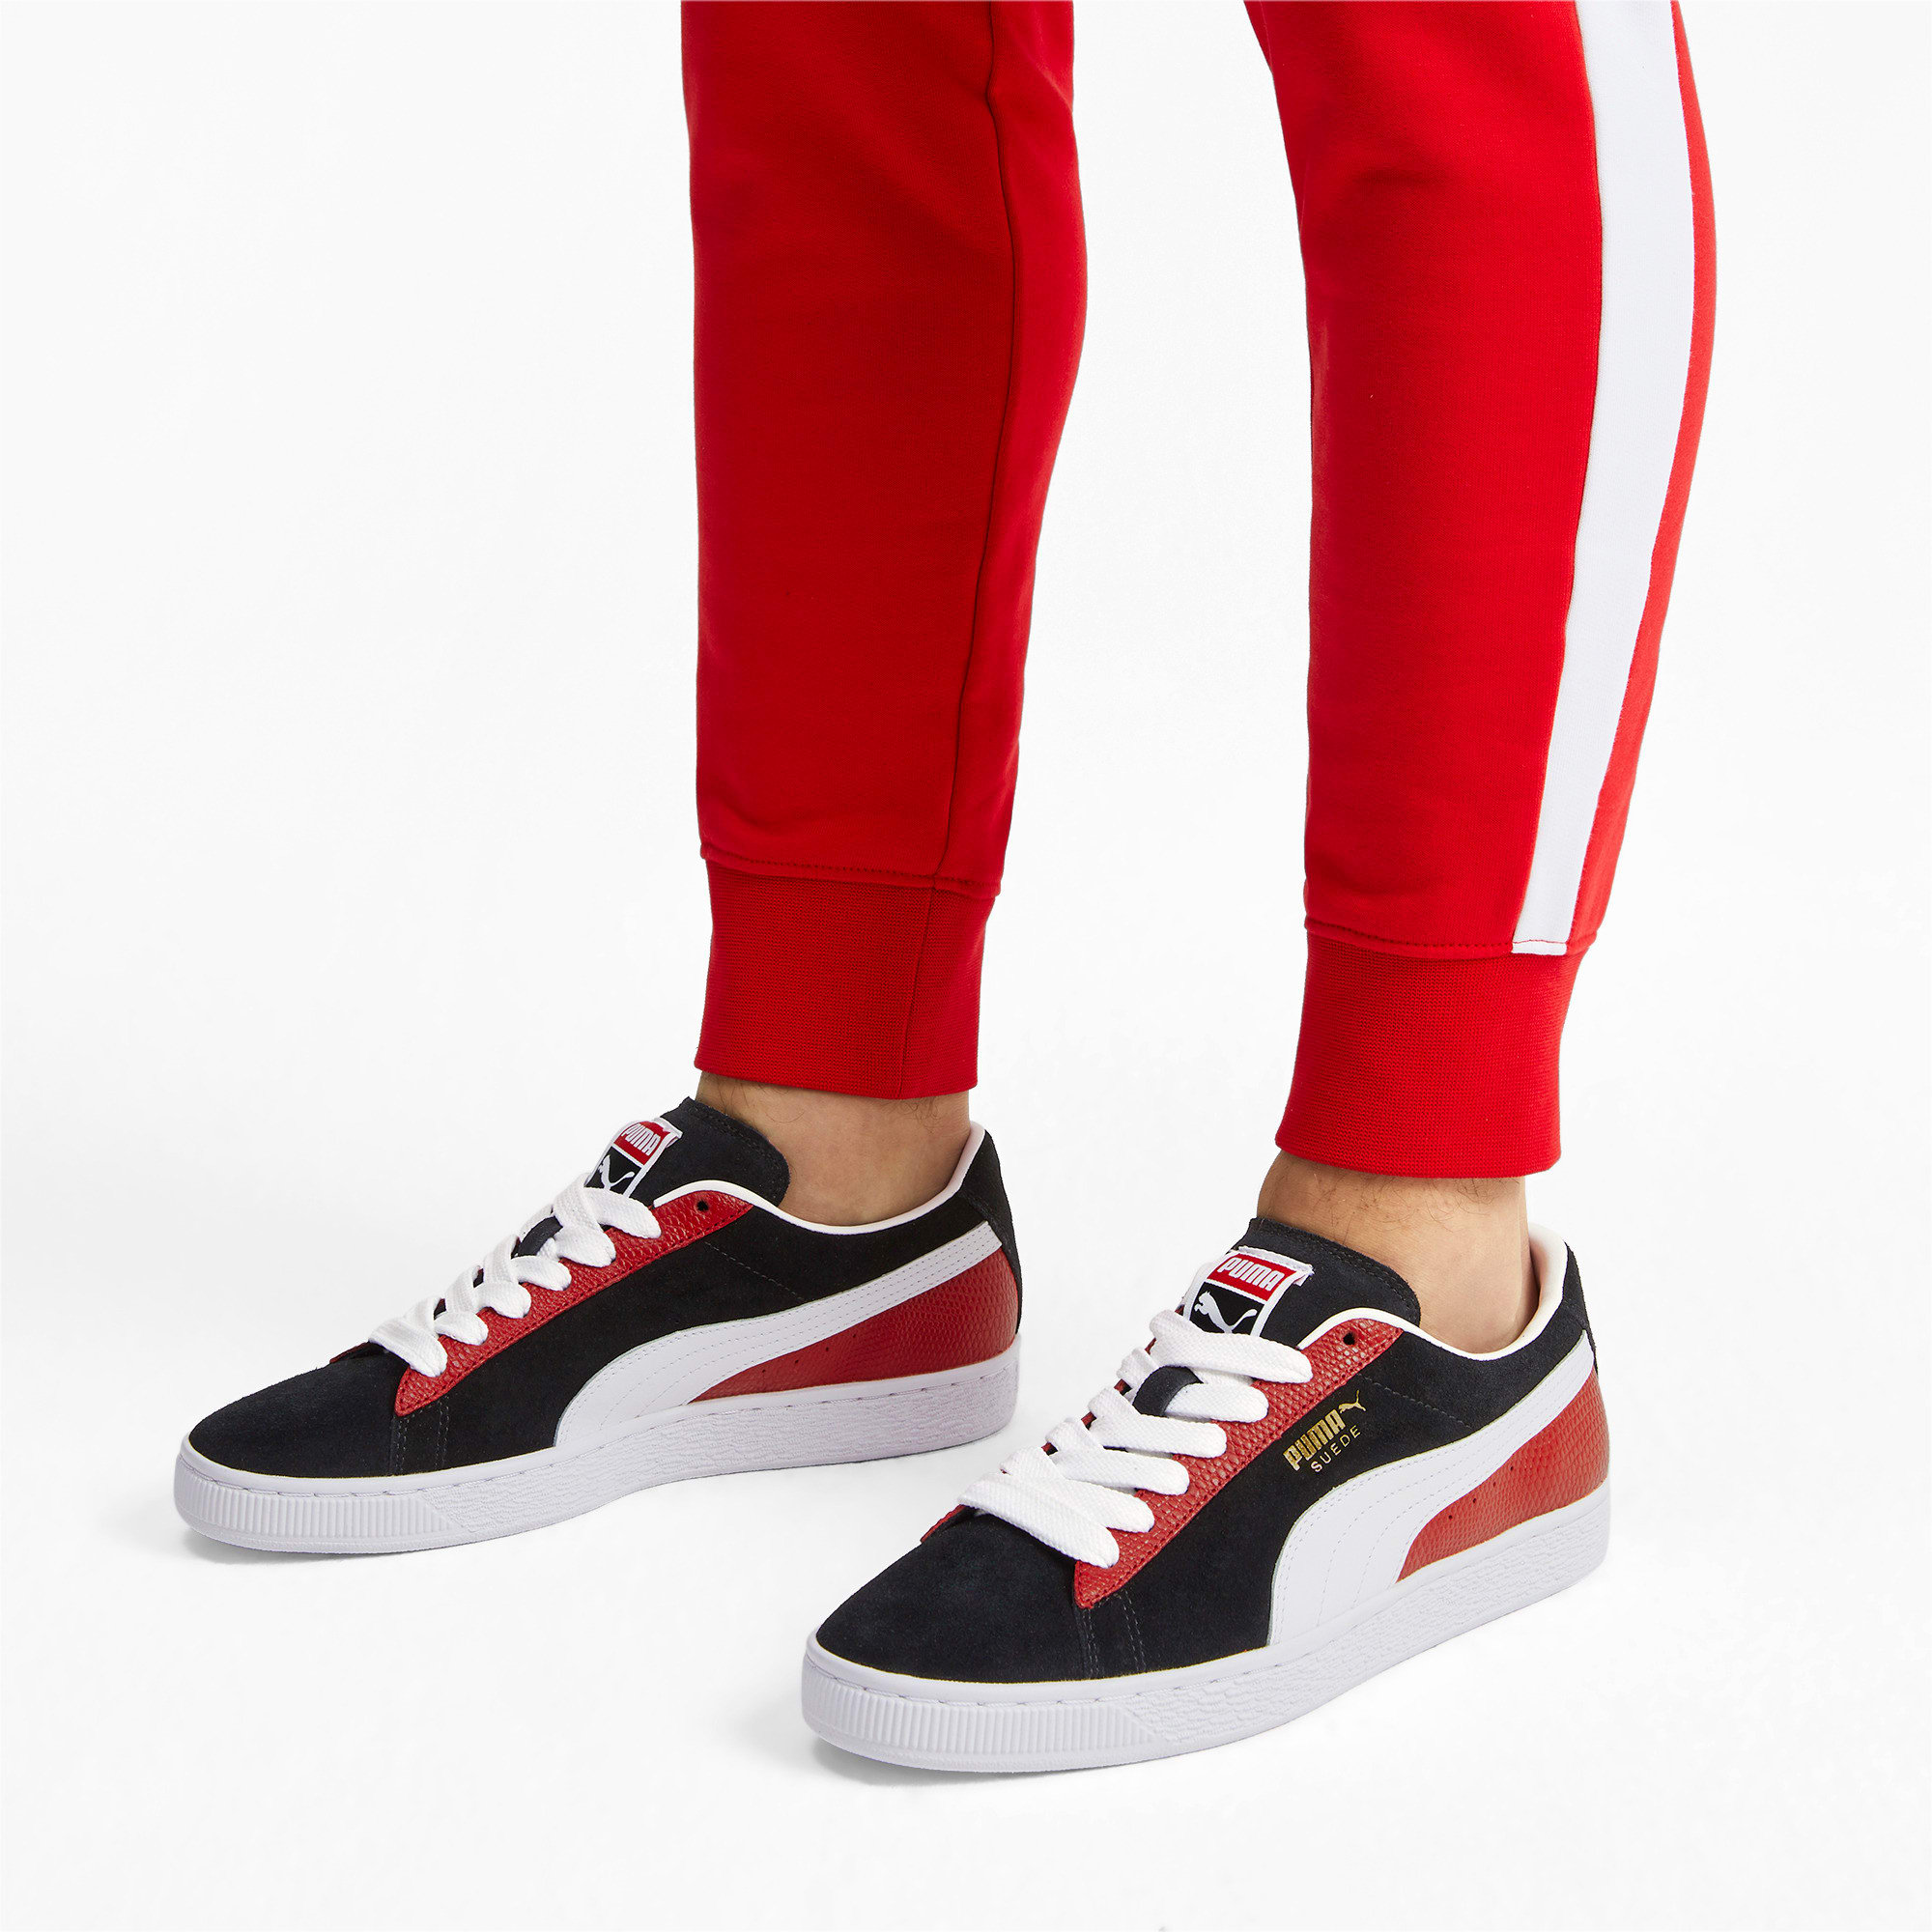 Thumbnail 3 of Suede Classic Block Sneakers, Black-High Risk Red-White, medium